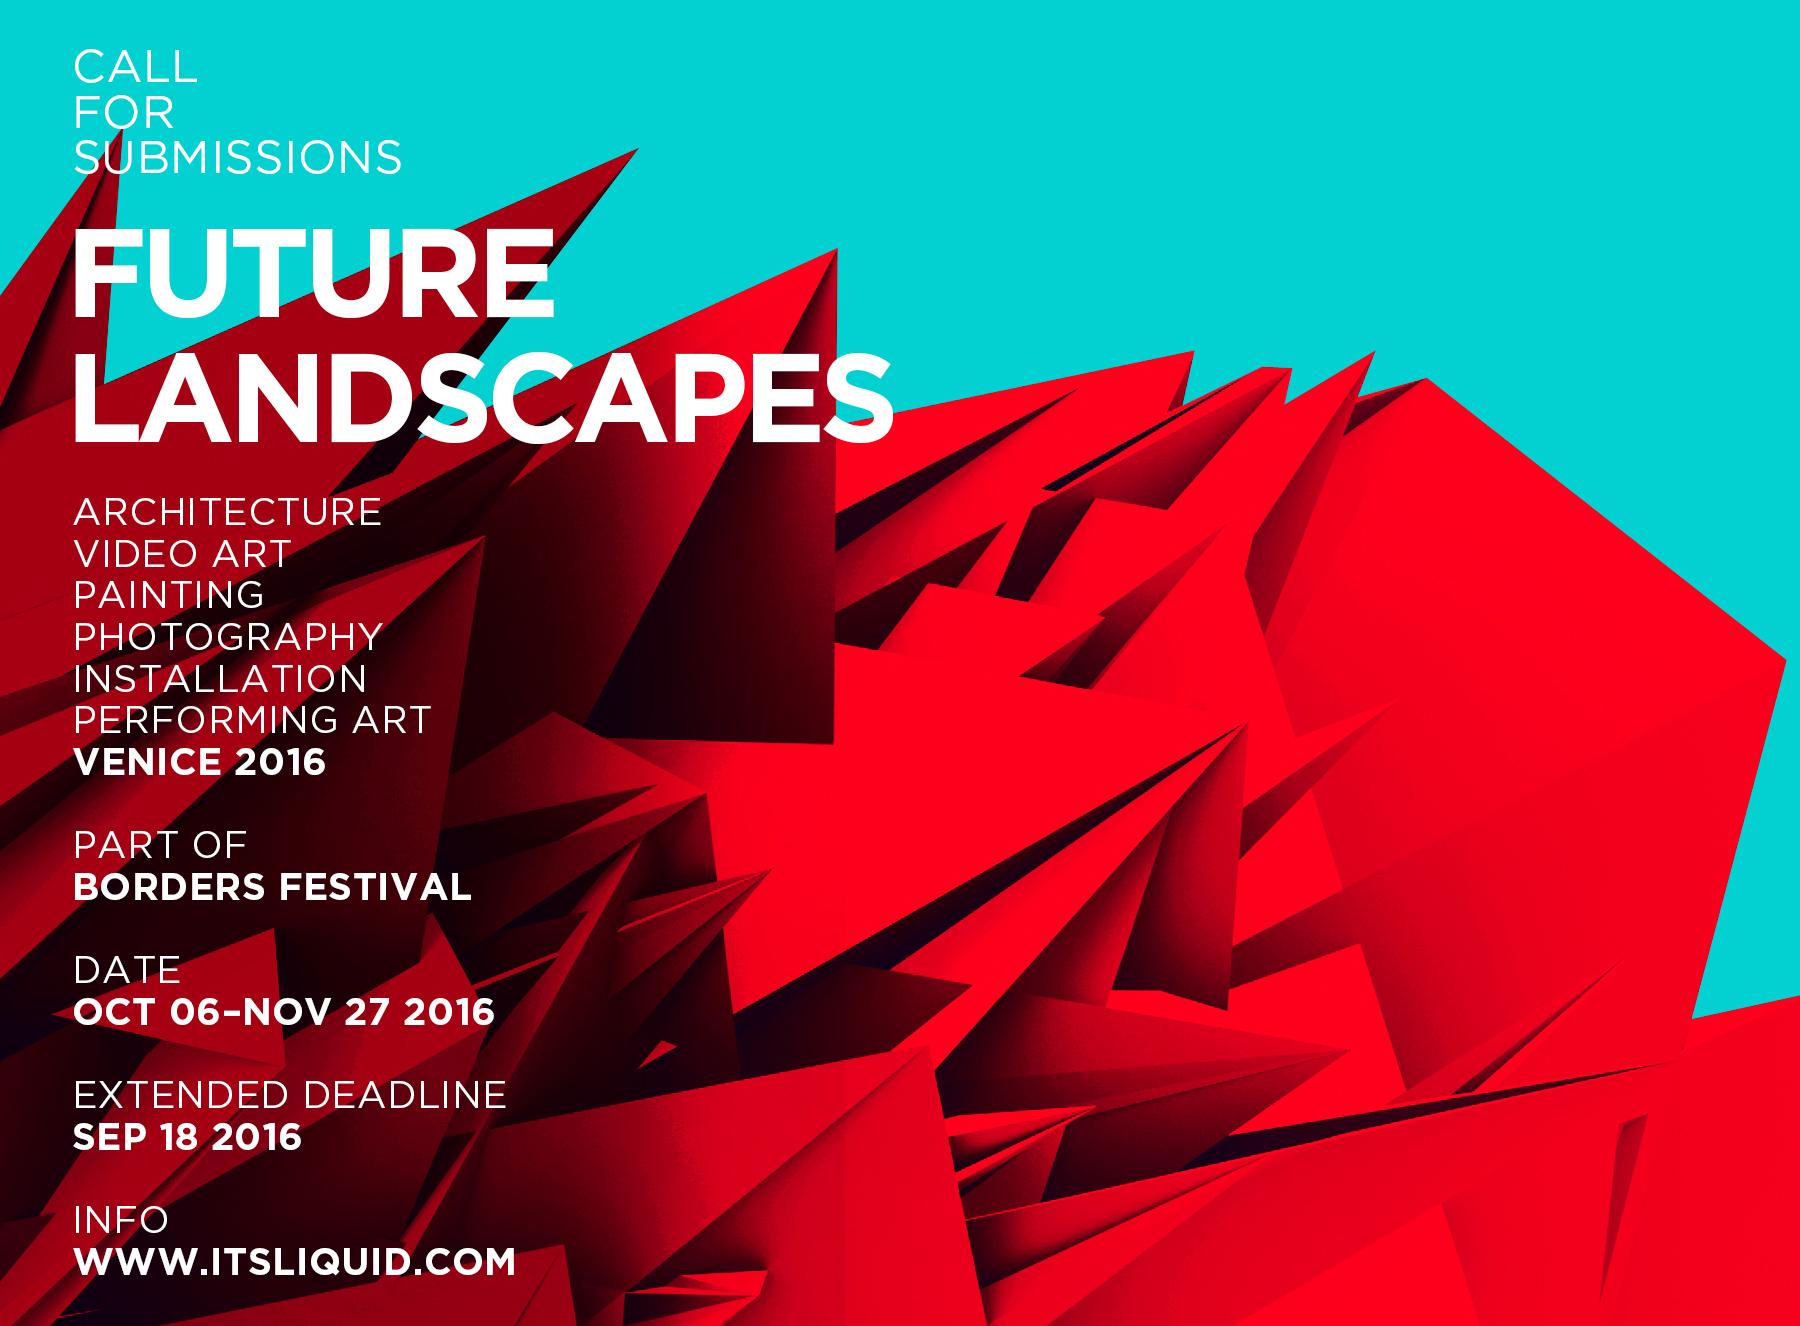 Call for submissions: FUTURE LANDSCAPES